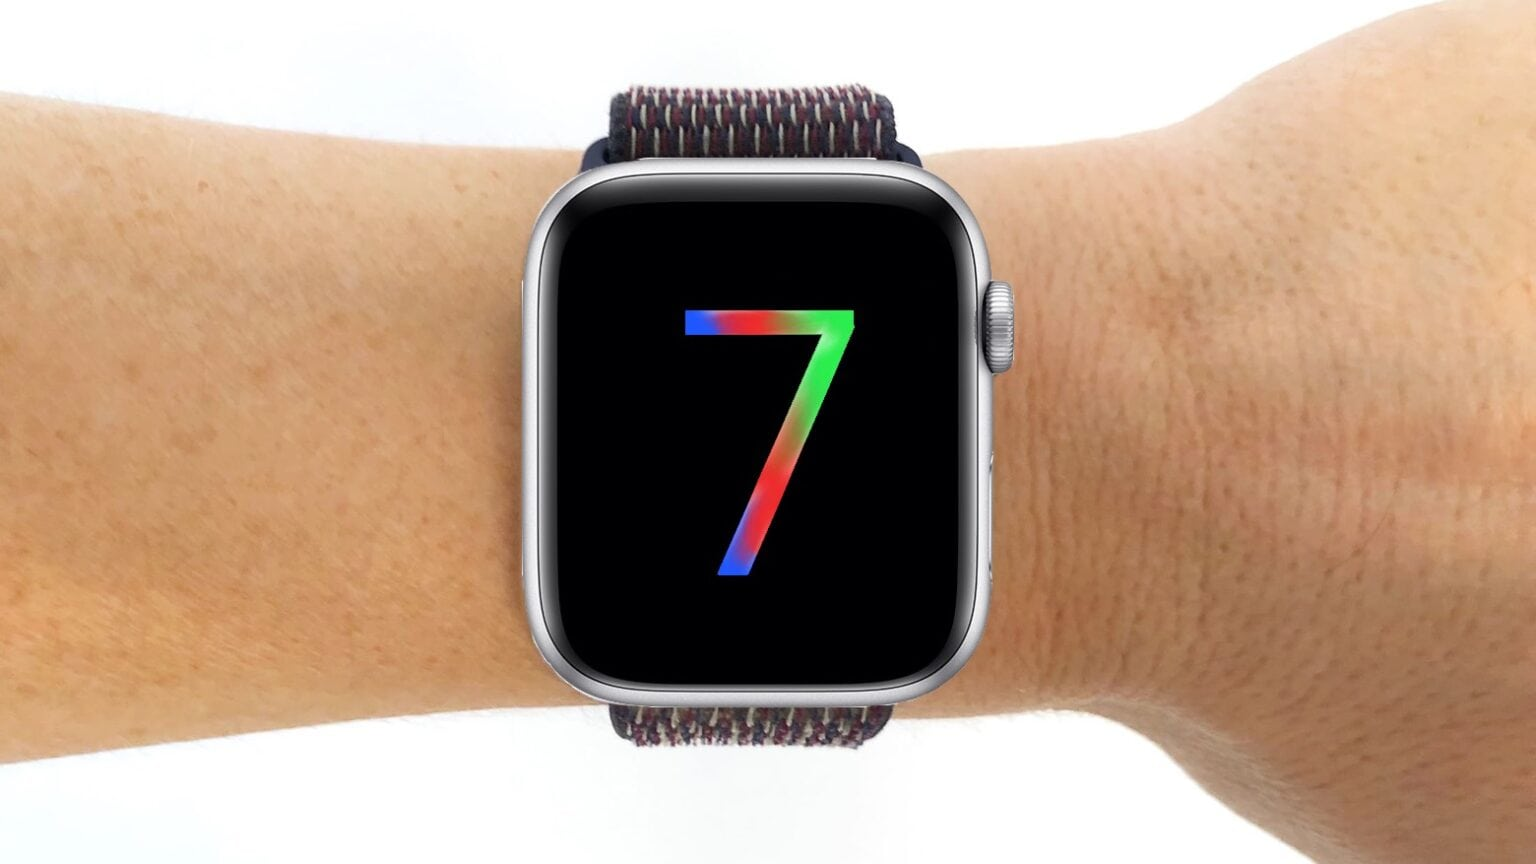 This is not an Apple Watch Series 7.